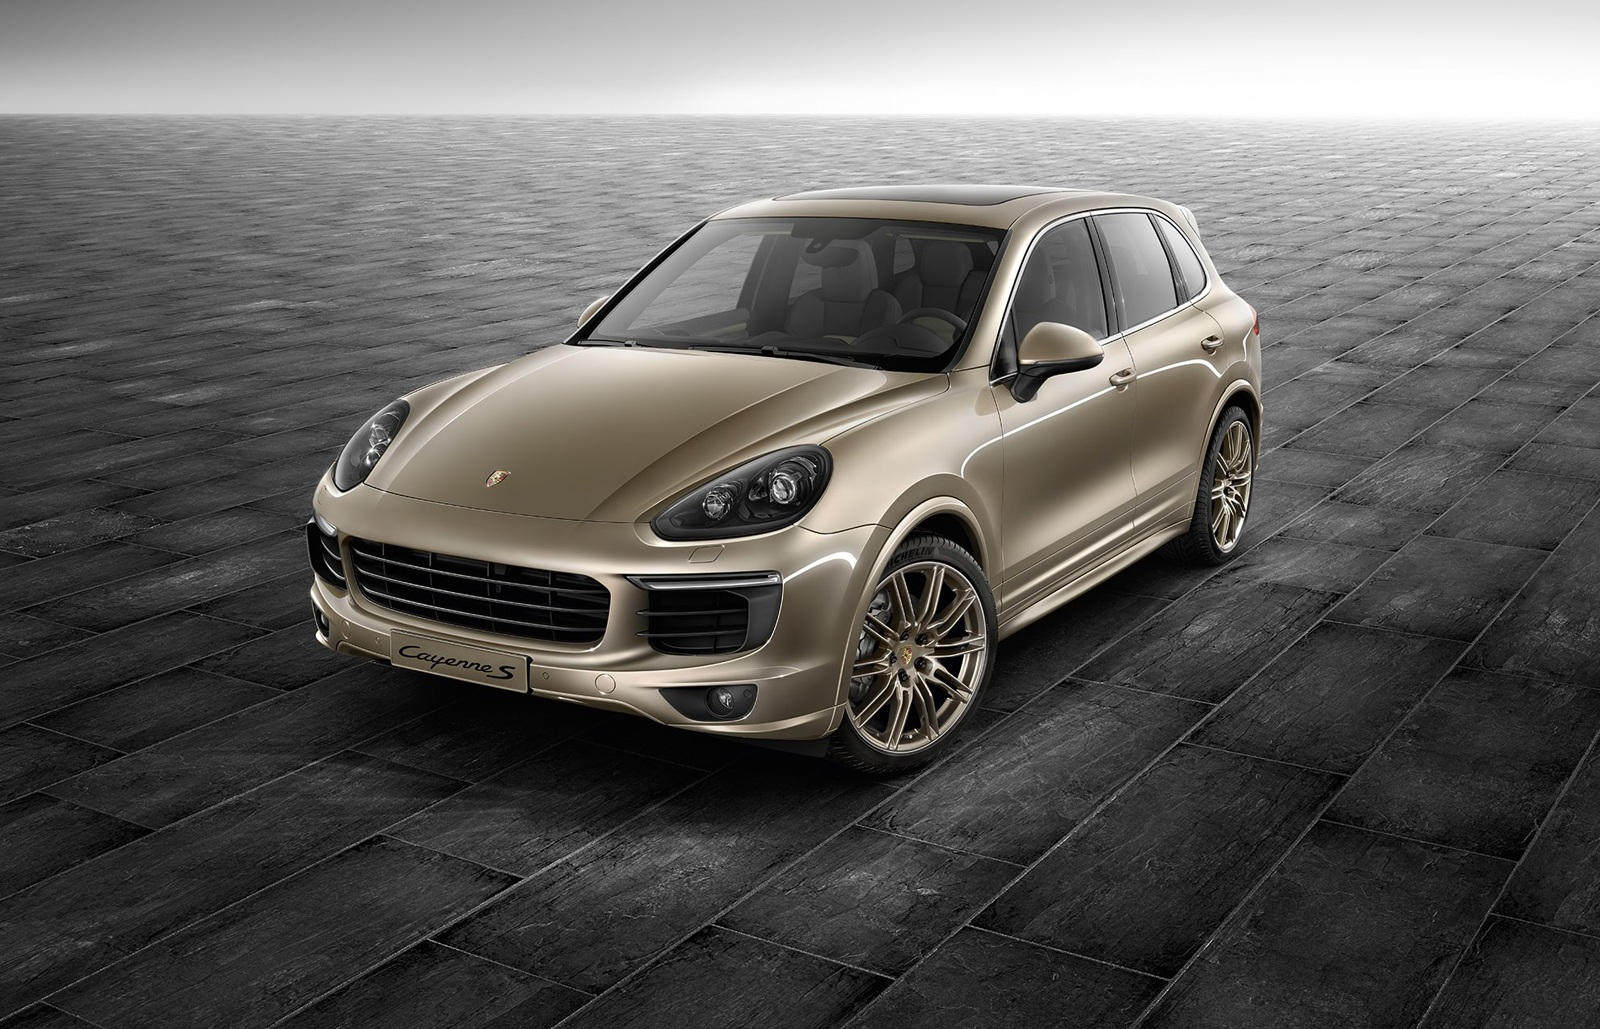 Porsche-Exclusive-Cayenne-S-Palladium-Metallic-1